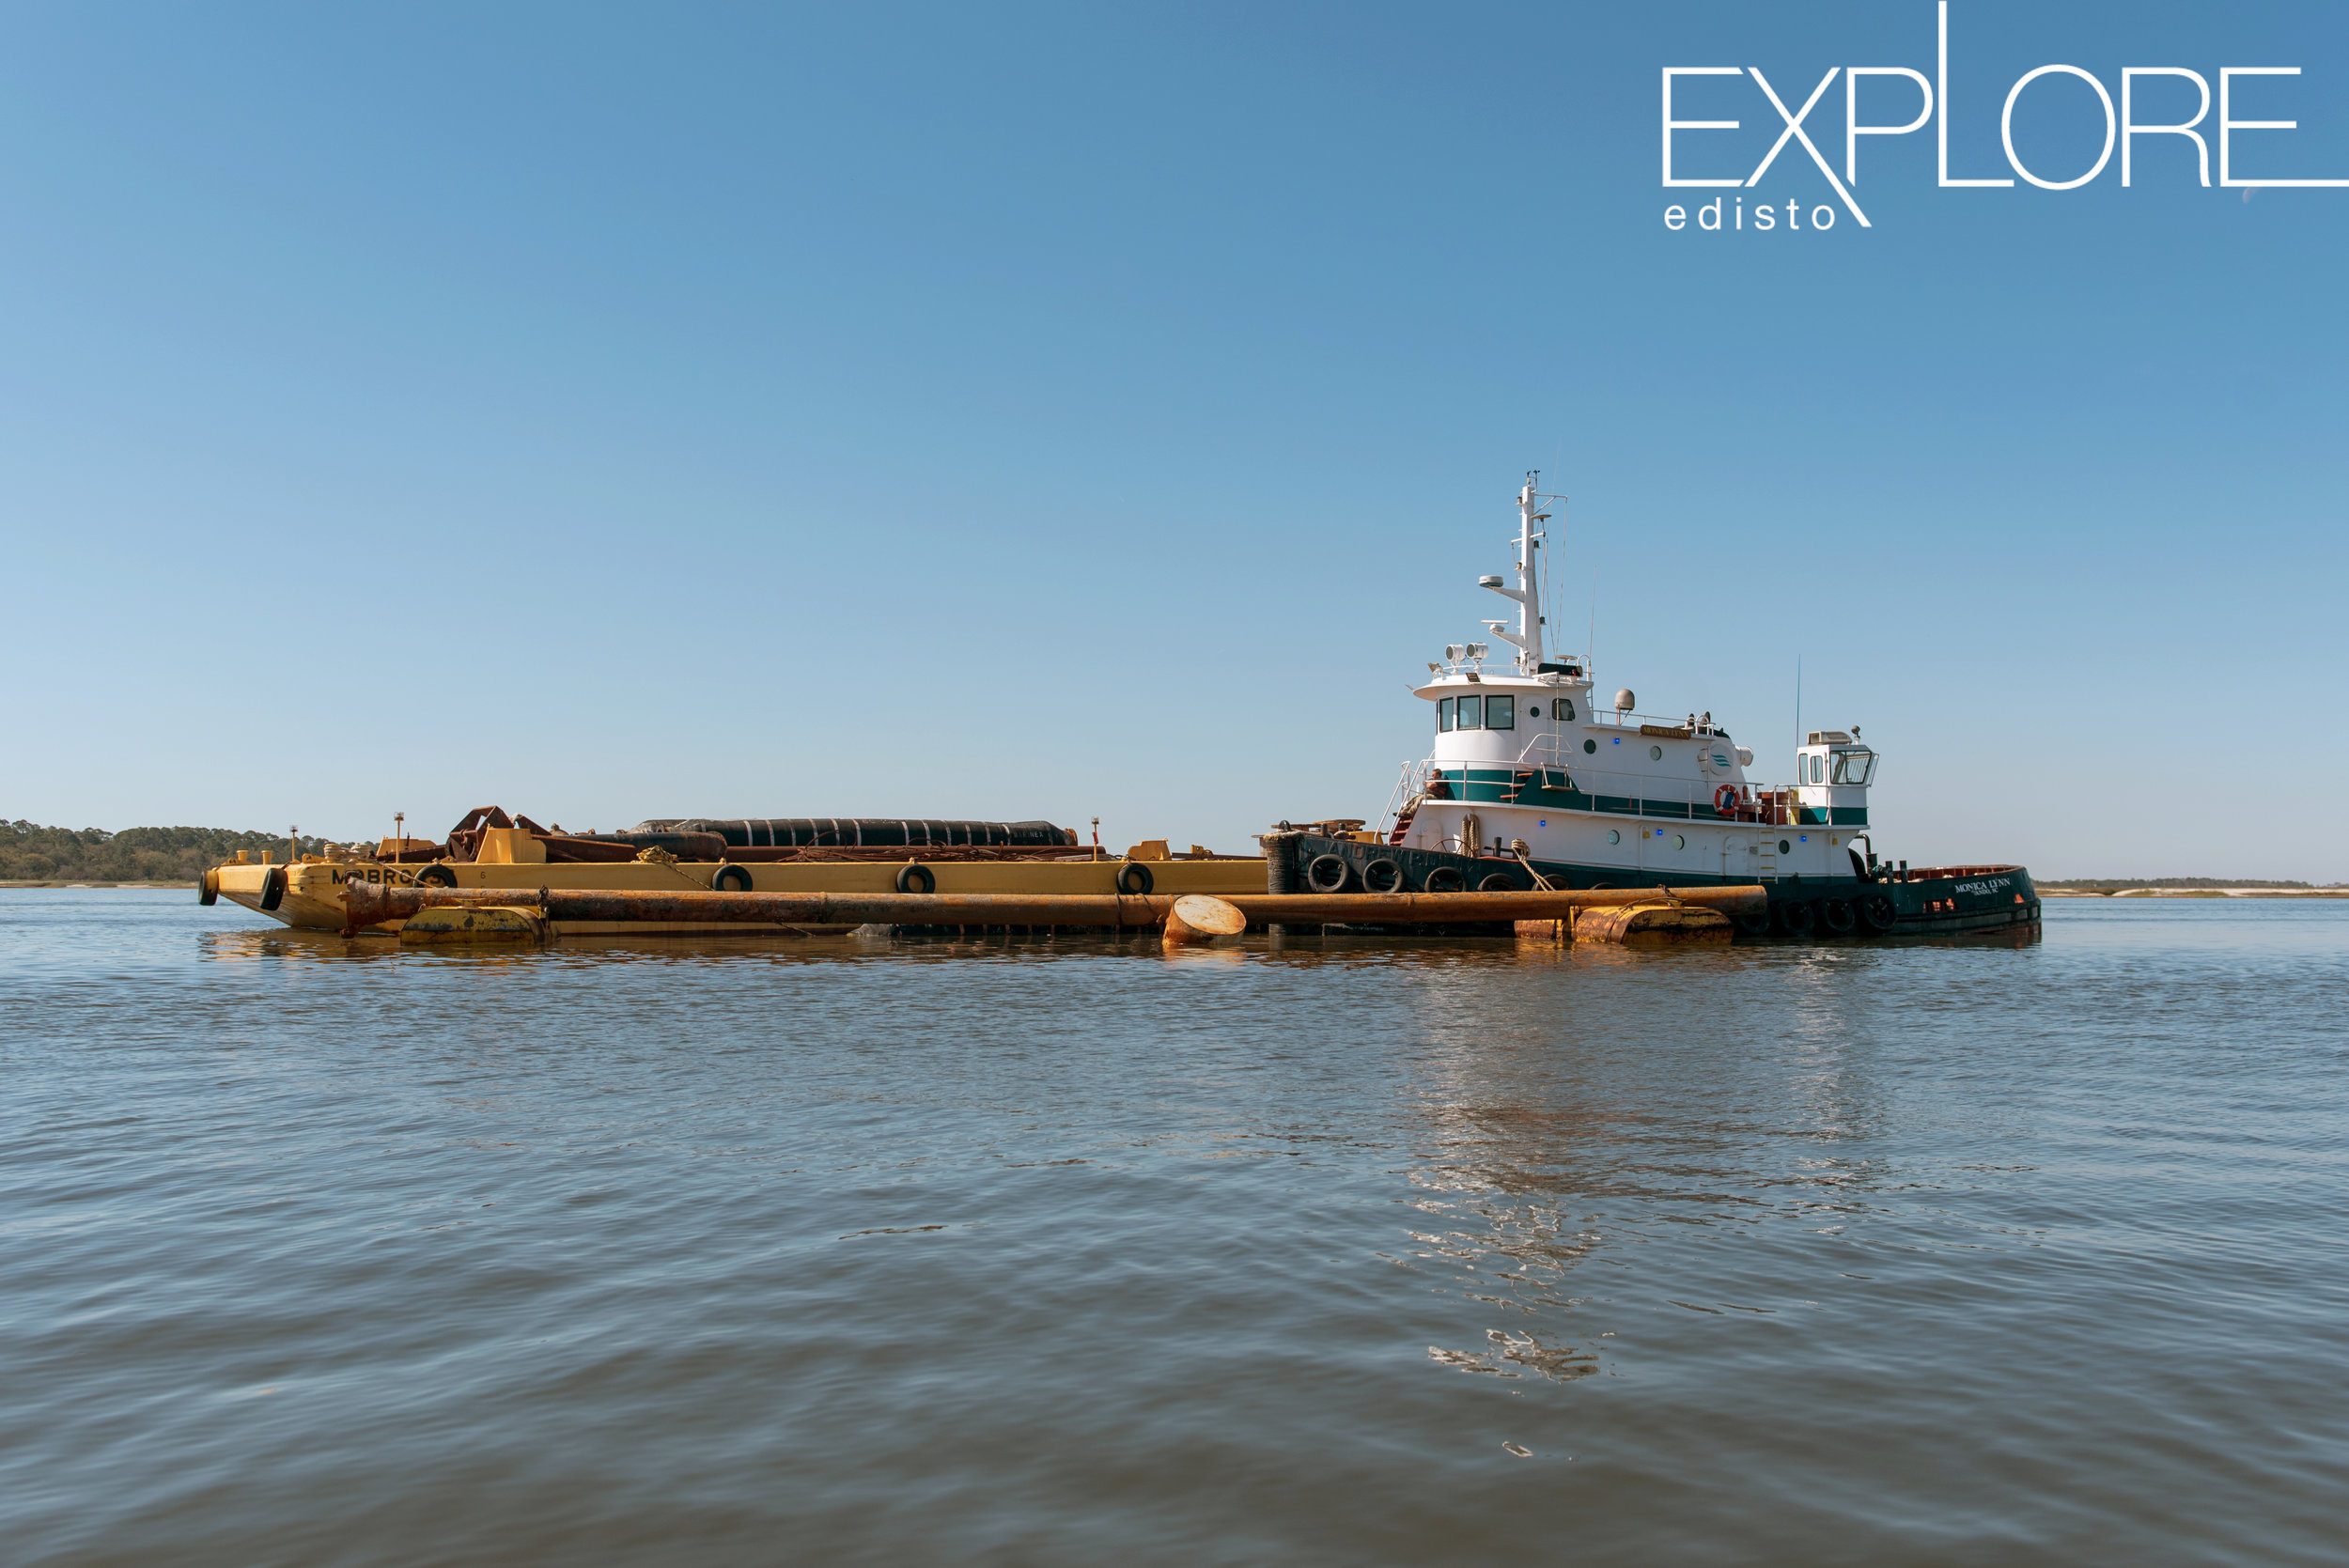 Barge and freight on the water during beach renourishement.